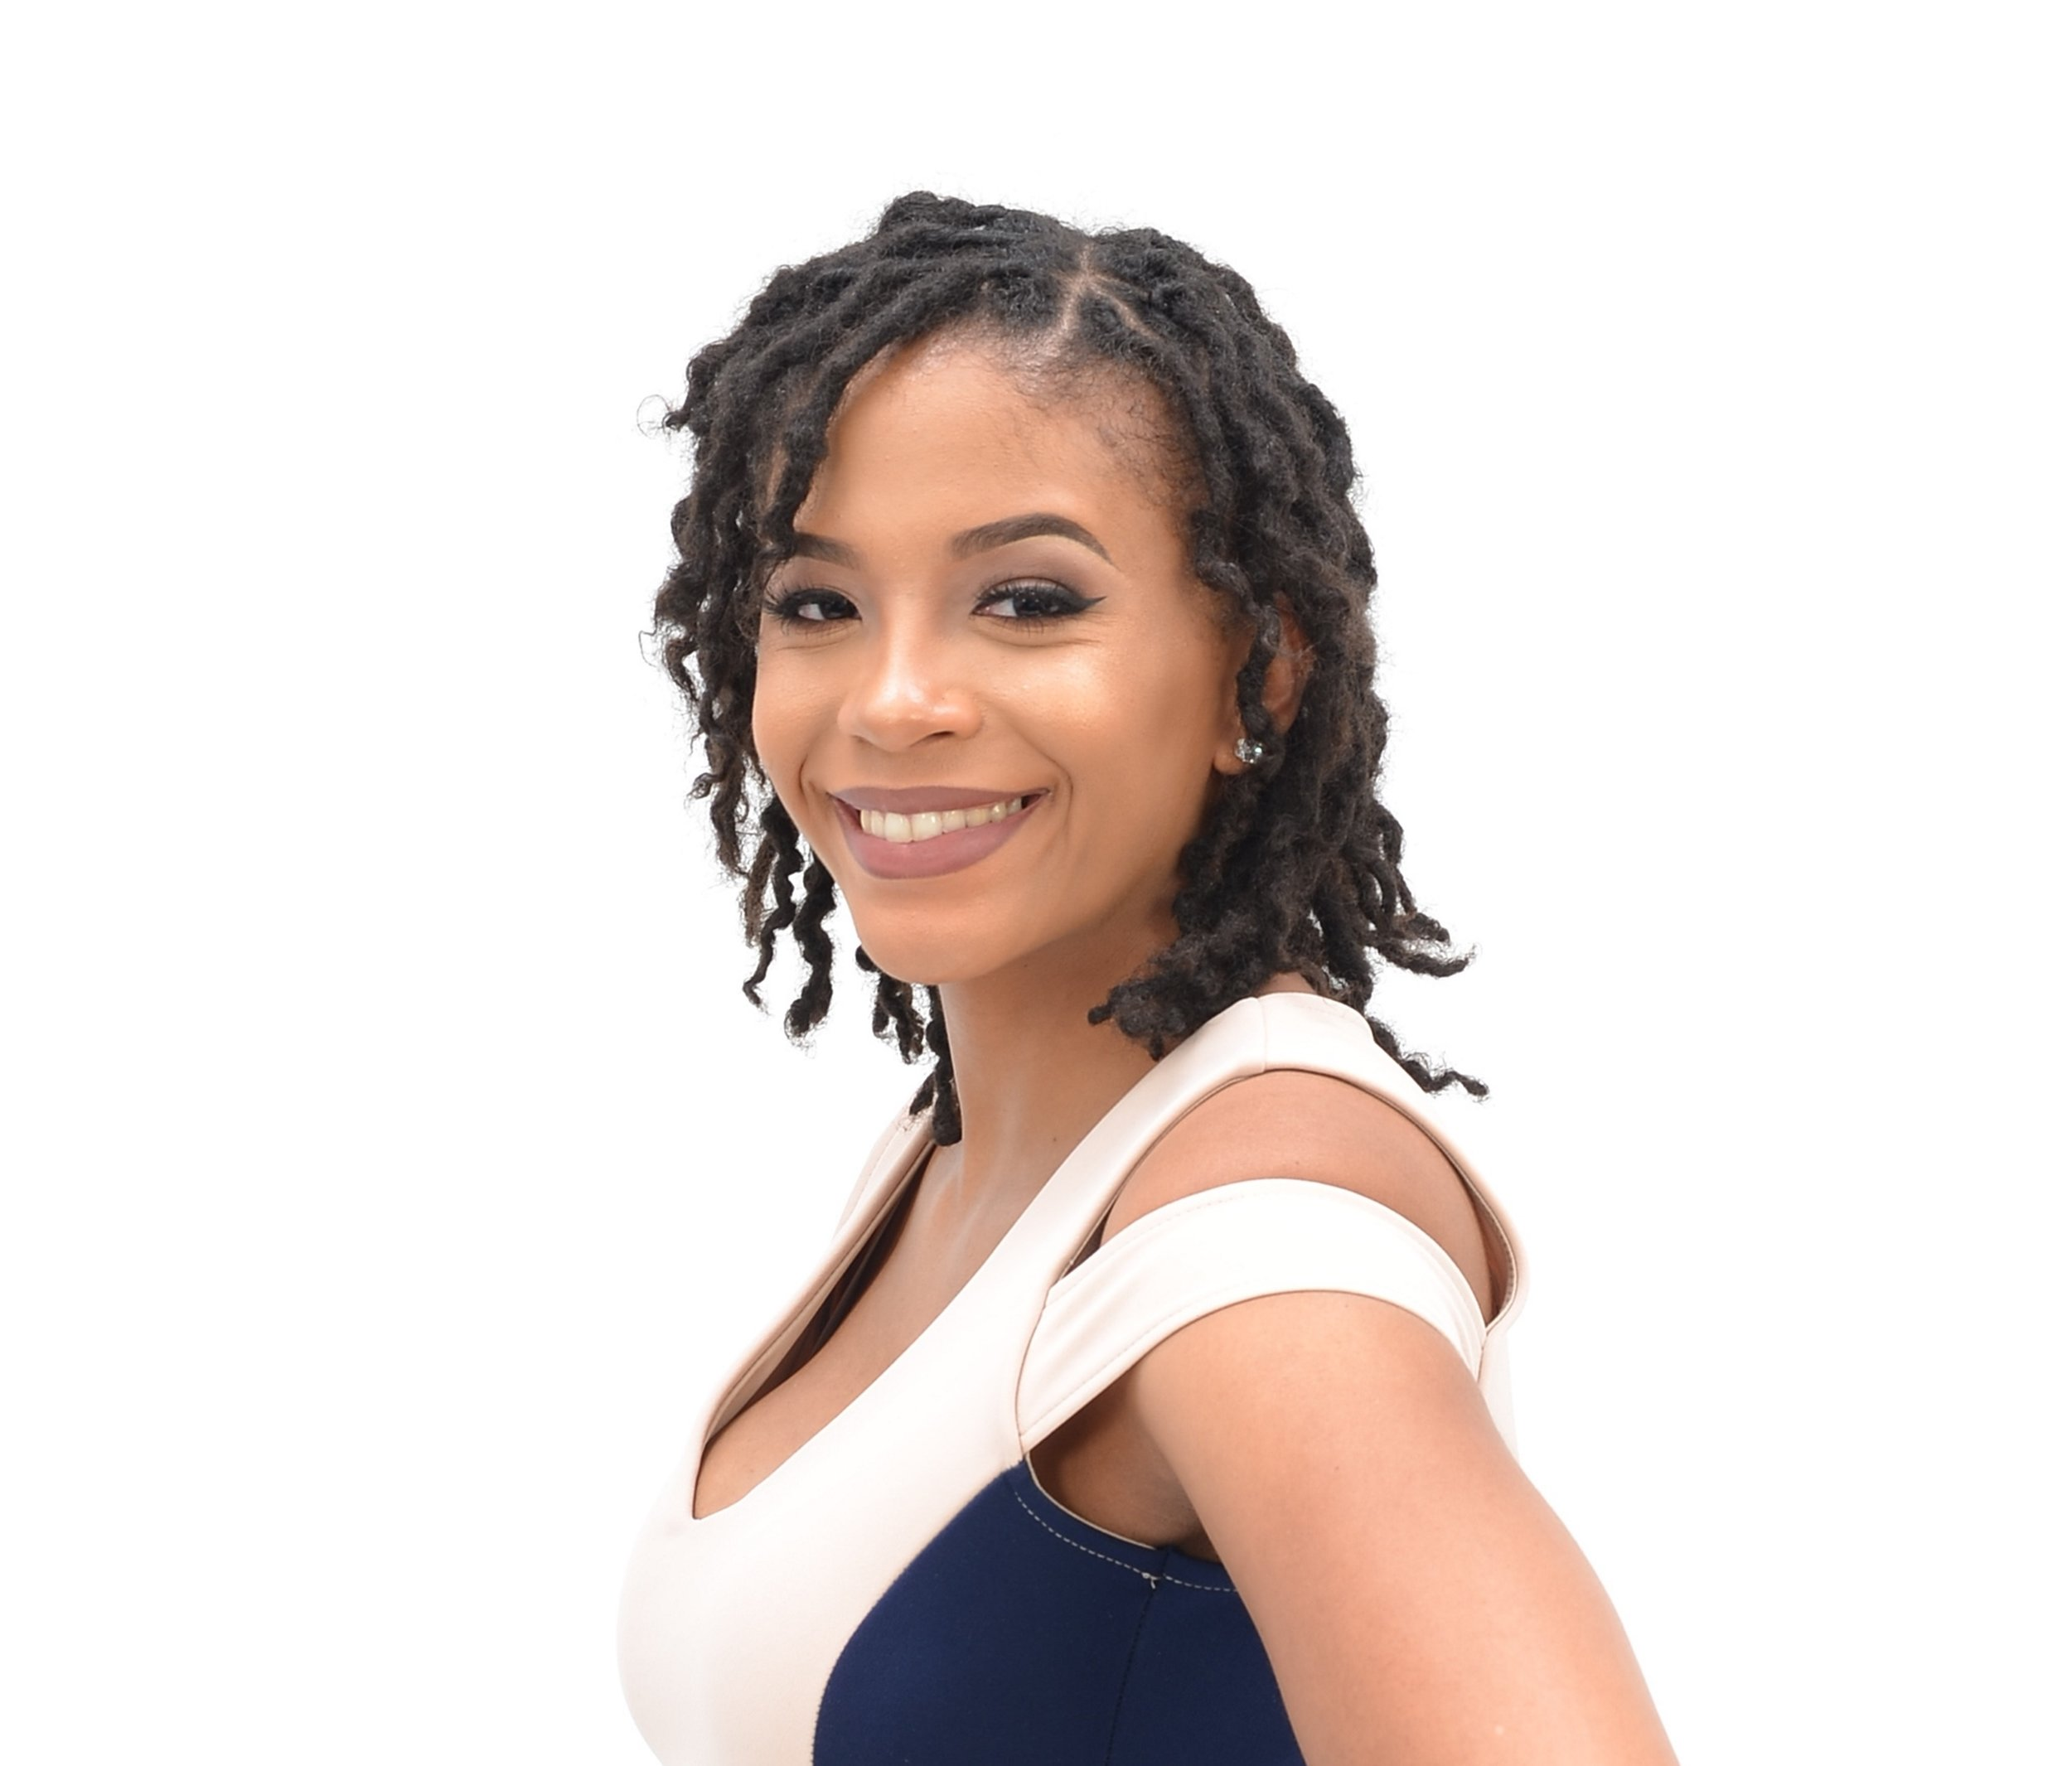 Trap Therapist - DylesiaBarner, LCSW is an author, speaker, and entrepreneur from Portsmouth, VA. Shegraduated from Old Dominion University in 2011 with a Bachelor of Science in Communication and Norfolk State University in 2013 with a Master of Social Work. She is currently a Doctor of Social Work student at Millersville University.Dylesiaowns Existence, Consciousness, Bliss Counseling, Psychotherapy, & Wellness Center (www.ecb-nashville.org), a mental health practice located in Nashville, TN. She is also the Founder and President of Trap Therapist (www.instagram.com/traptherapist), a platform connectingmental health professionals fromurban, low-income backgrounds with one another and with clients frommarginalized communities.Passionate about using transparency to humanize therapists in a way that breaks mental health stigma,Dylesiaregularly createsconversations around emotional healing, breaking generational curses, and the differences that exist within minority sub-cultures. Shehas traveled as far as to Europe to deliver presentations to practitioners and laypersons on topics such as spiritual abuse, a form of religious trauma that often impacts vulnerable populations. In 2012,Dylesiapublished her first bookEncouragement at Your Fingertips: 365 Days of Inspiration.She continues to develop self-help and Christian devotional content through her website (www.dylesiabarner.com).